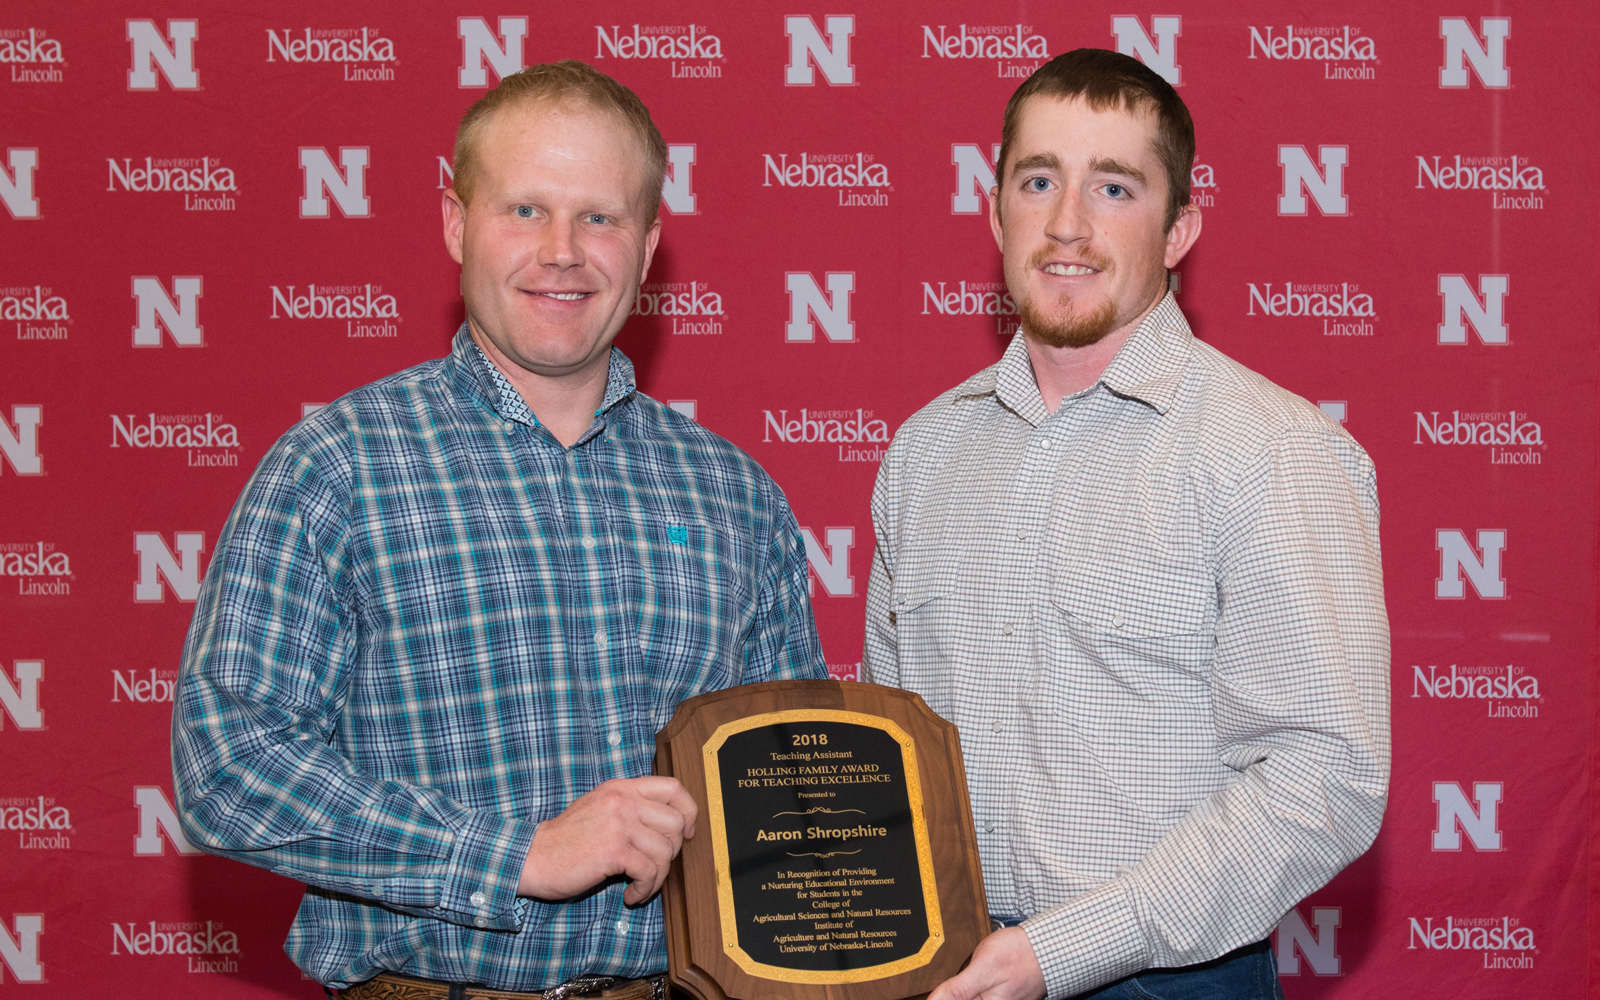 Aaron Shropshire, left, accepts his Teaching Assistant Teaching Excellence Award from Austin Holliday, senior Grazing Livestock Systems major.